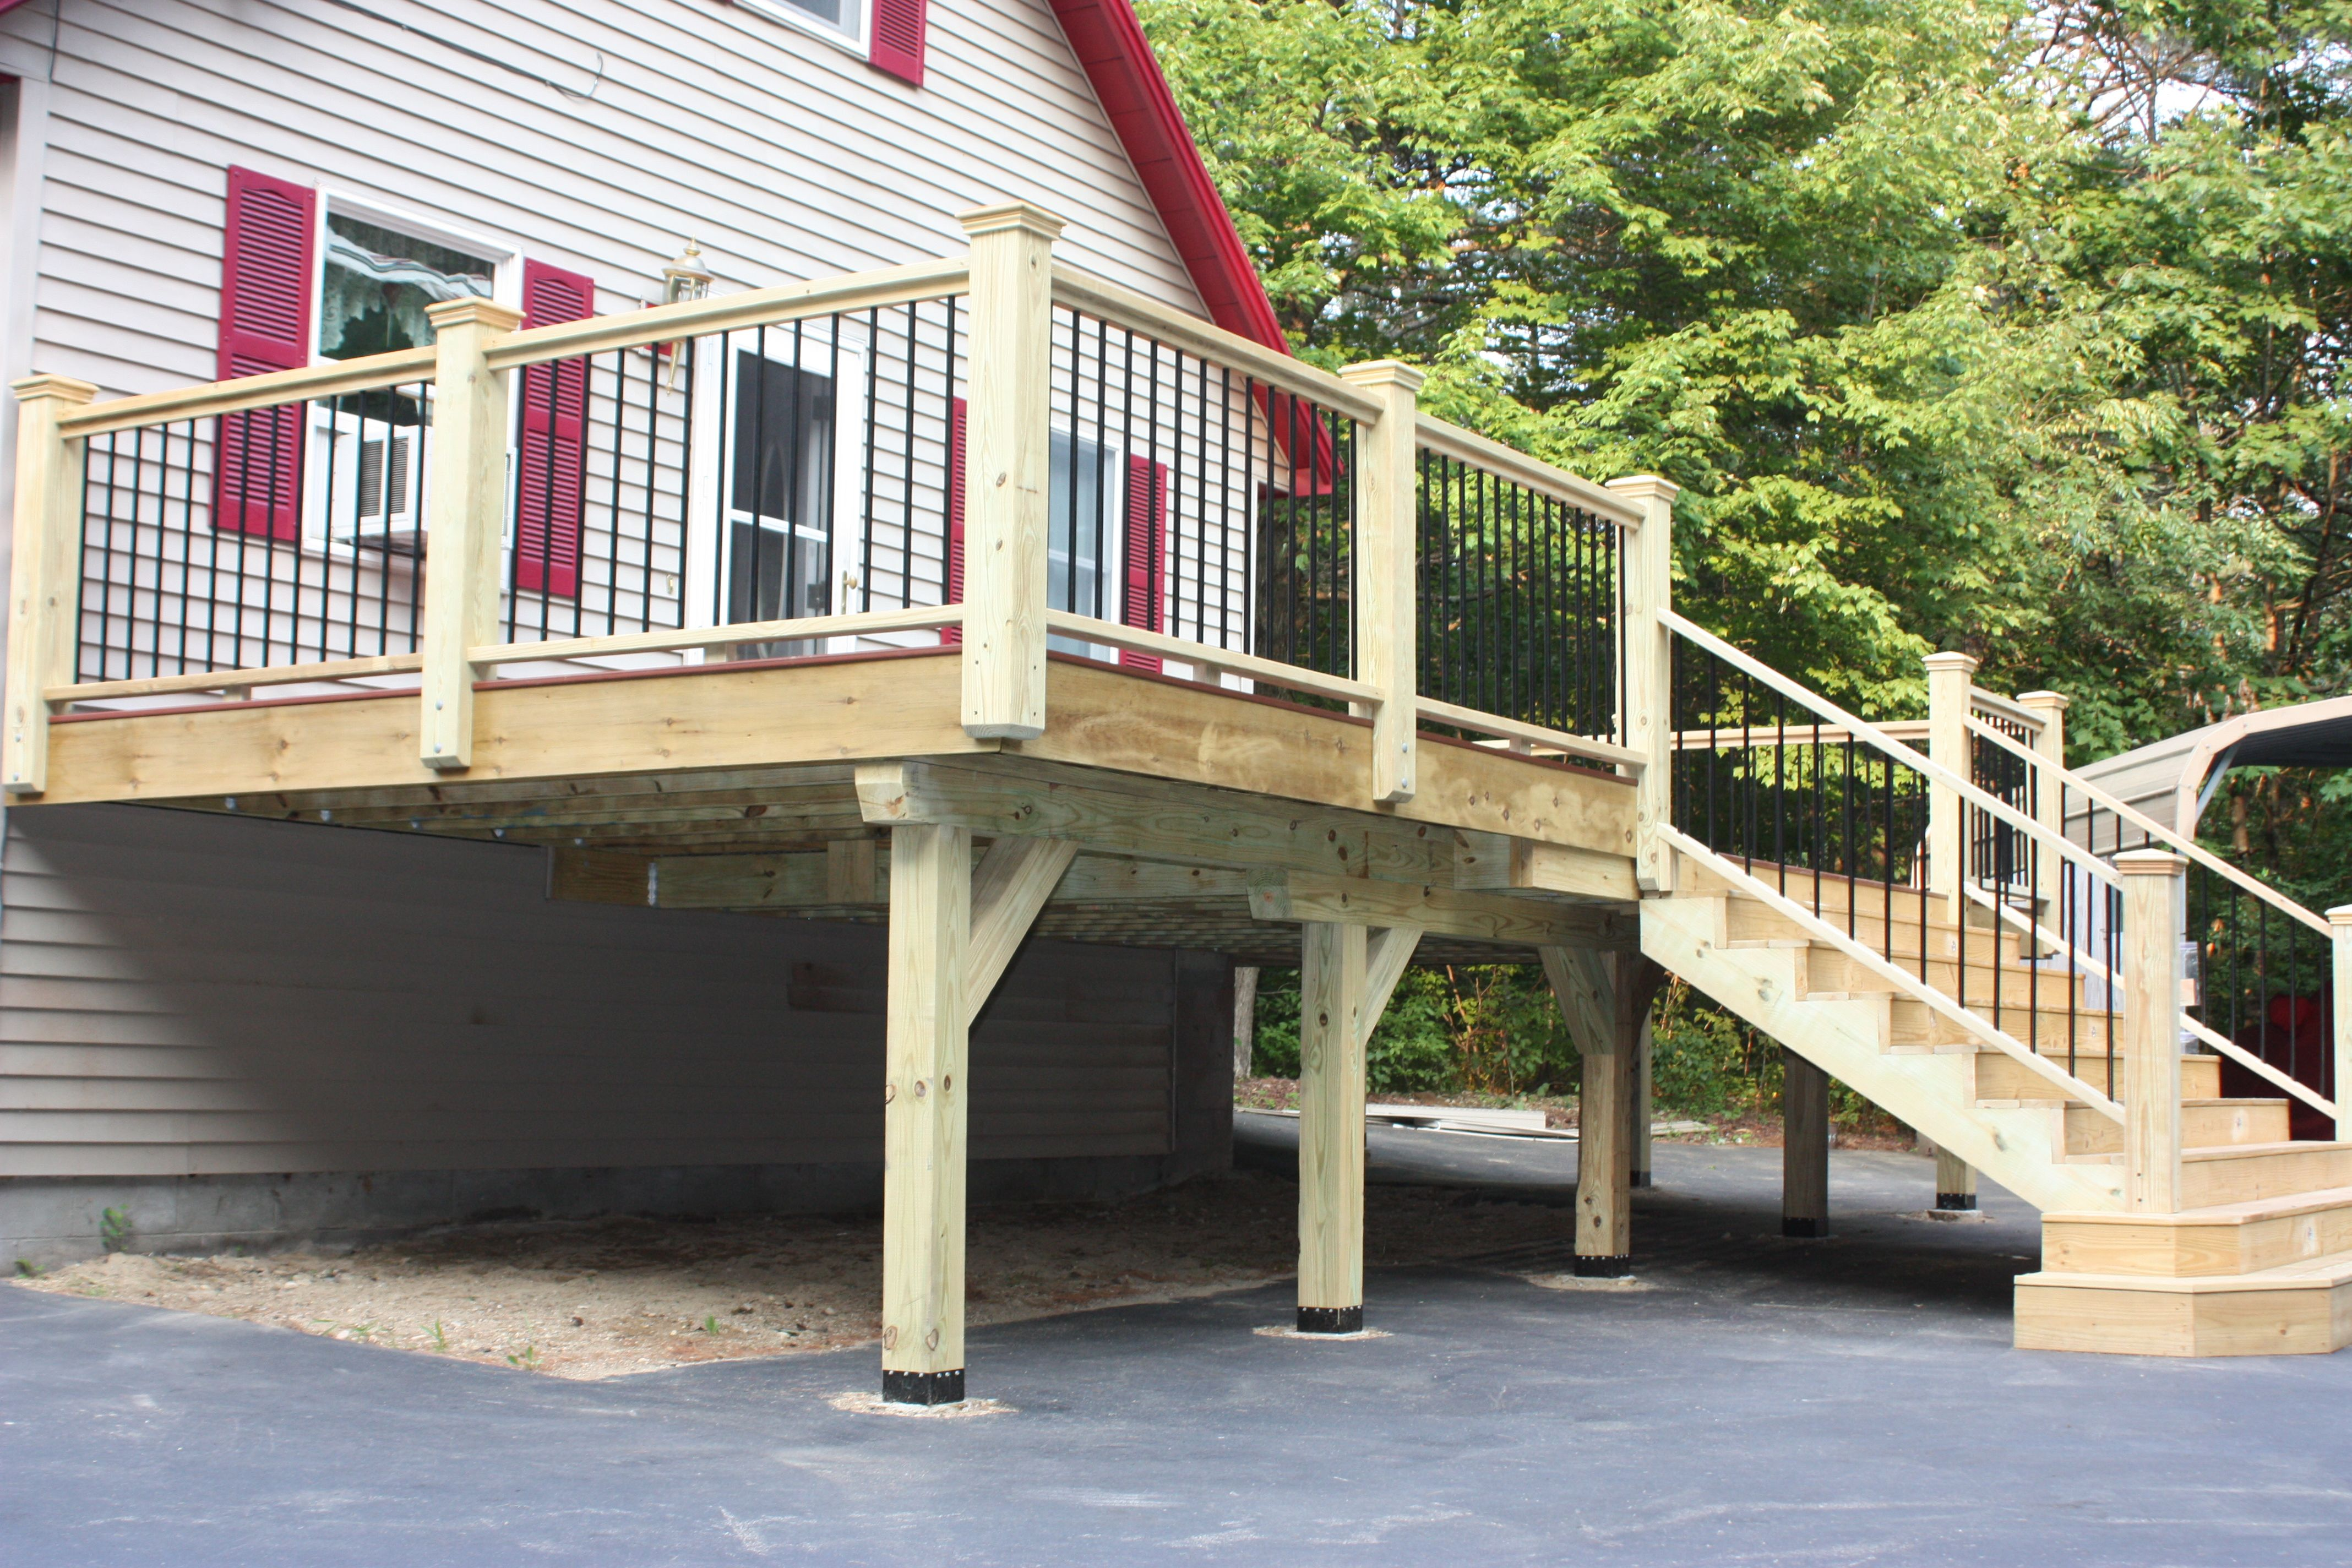 New deck built by ryan kelley with pressure treated wood and new deck built by ryan kelley with pressure treated wood and latitudes capricorn koa composite decking baanklon Image collections